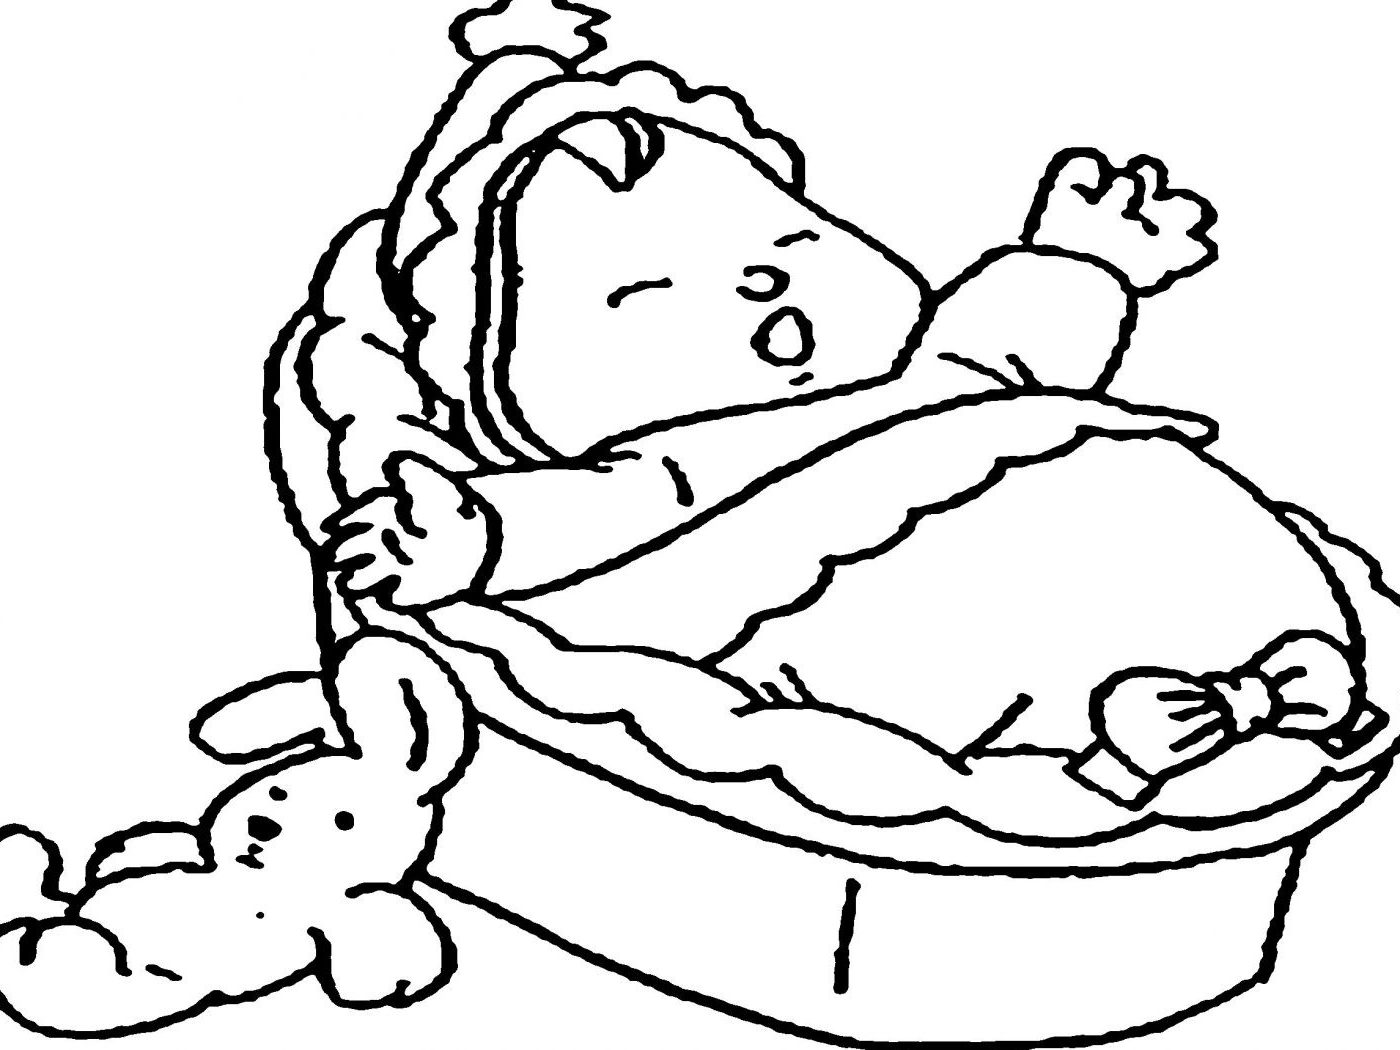 1400x1050 Realistic Baby Coloring Pages Animal Fearsome Moses